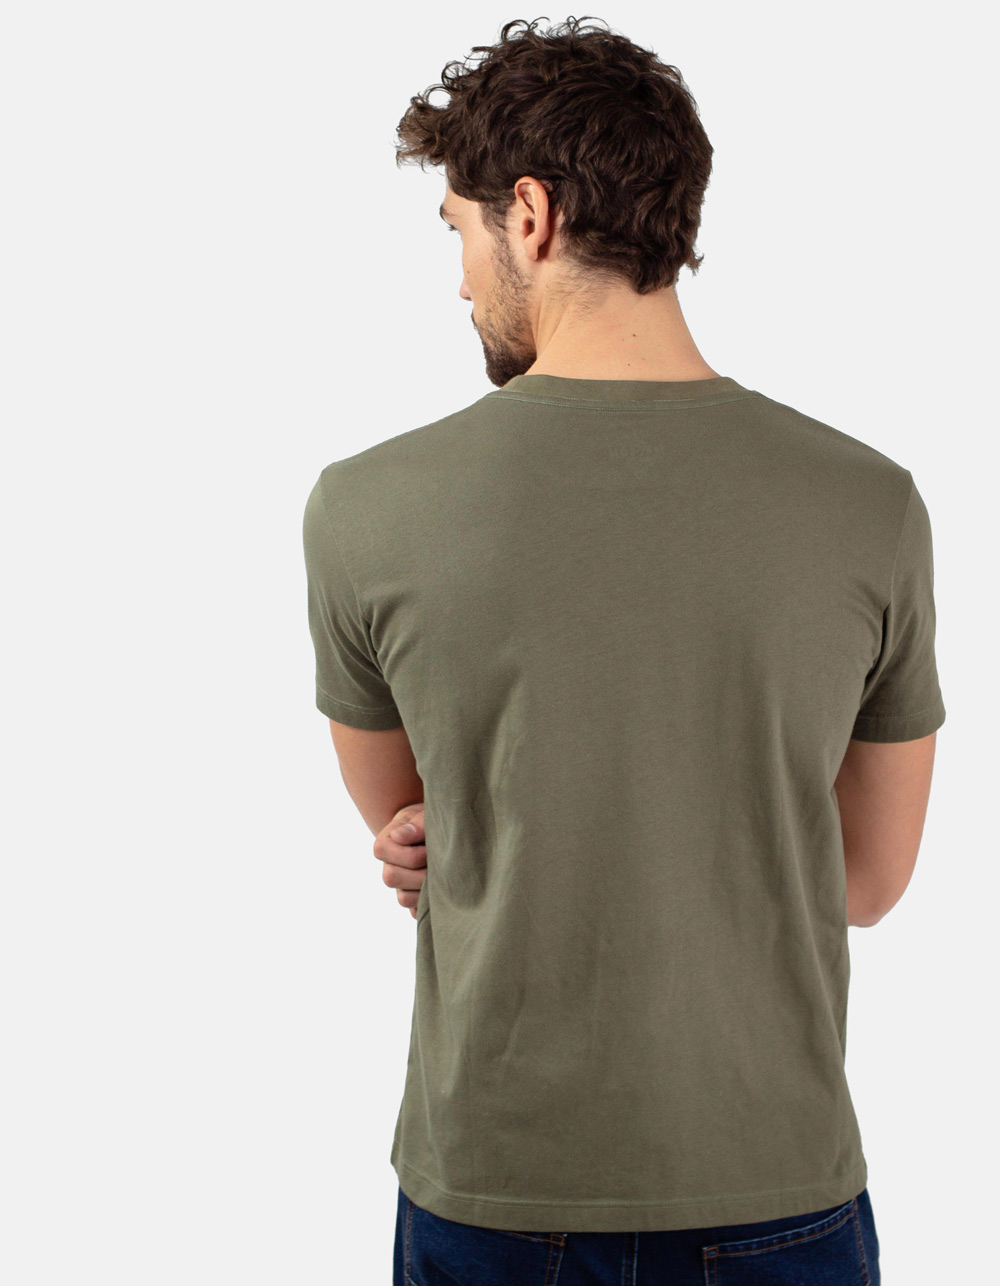 Green t-shirt with printed letters. - Backside